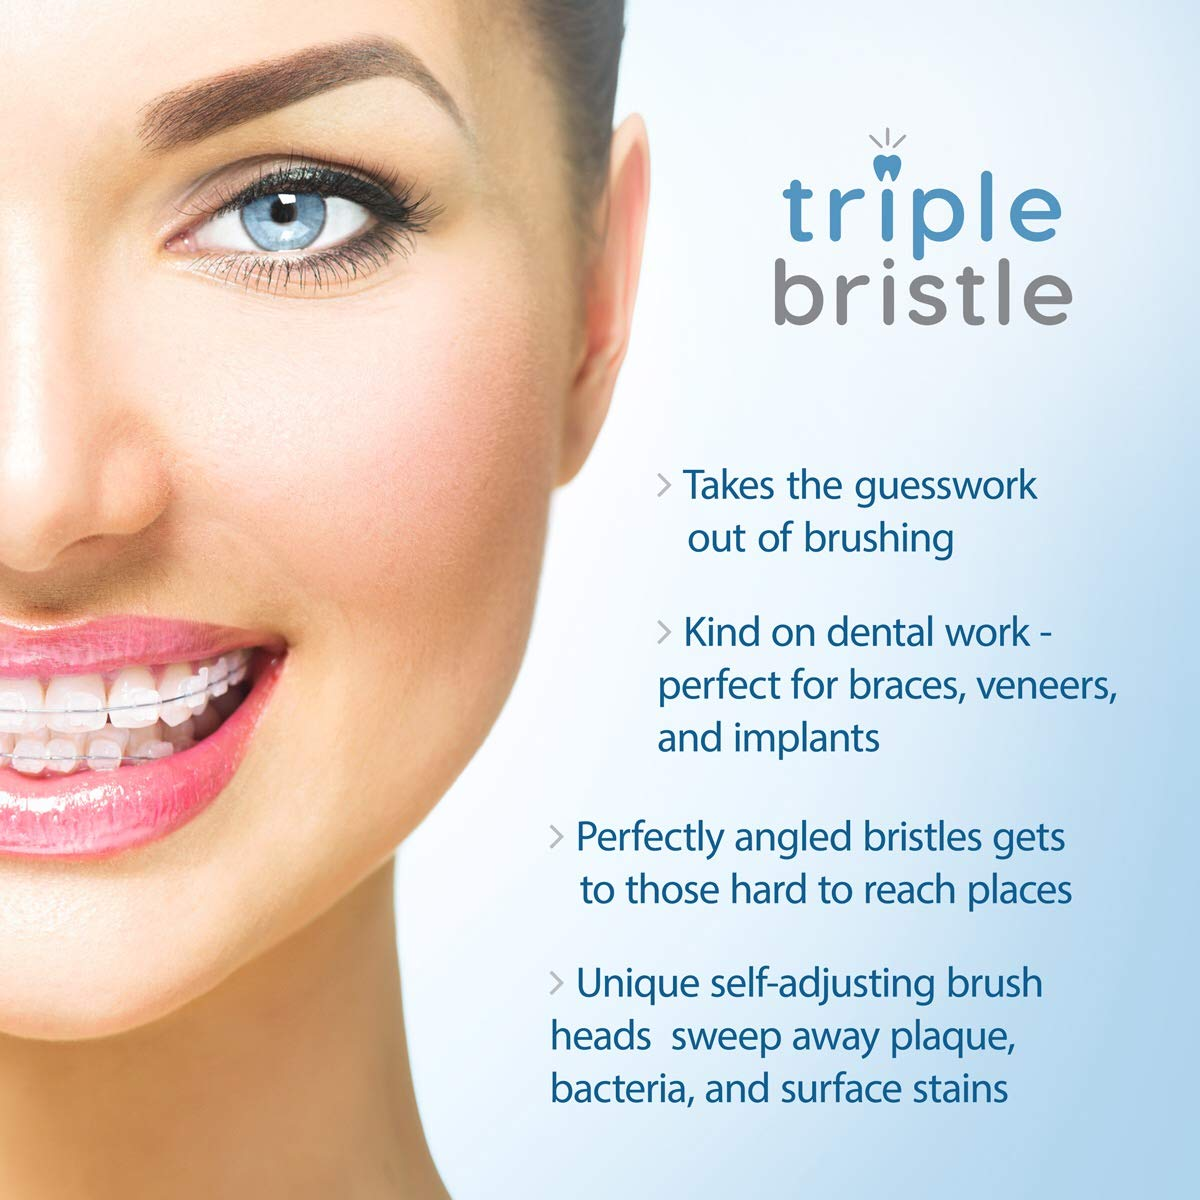 Triple Bristle Best Sonic Electric Toothbrush - Whiter Teeth & Brighter Smile - Rechargeable 31,000 VPM Tooth Brush is Unique & Patented 3 Brush Head Design - Perfect Angle Bristles Clean Each Tooth by Triple Bristle (Image #7)